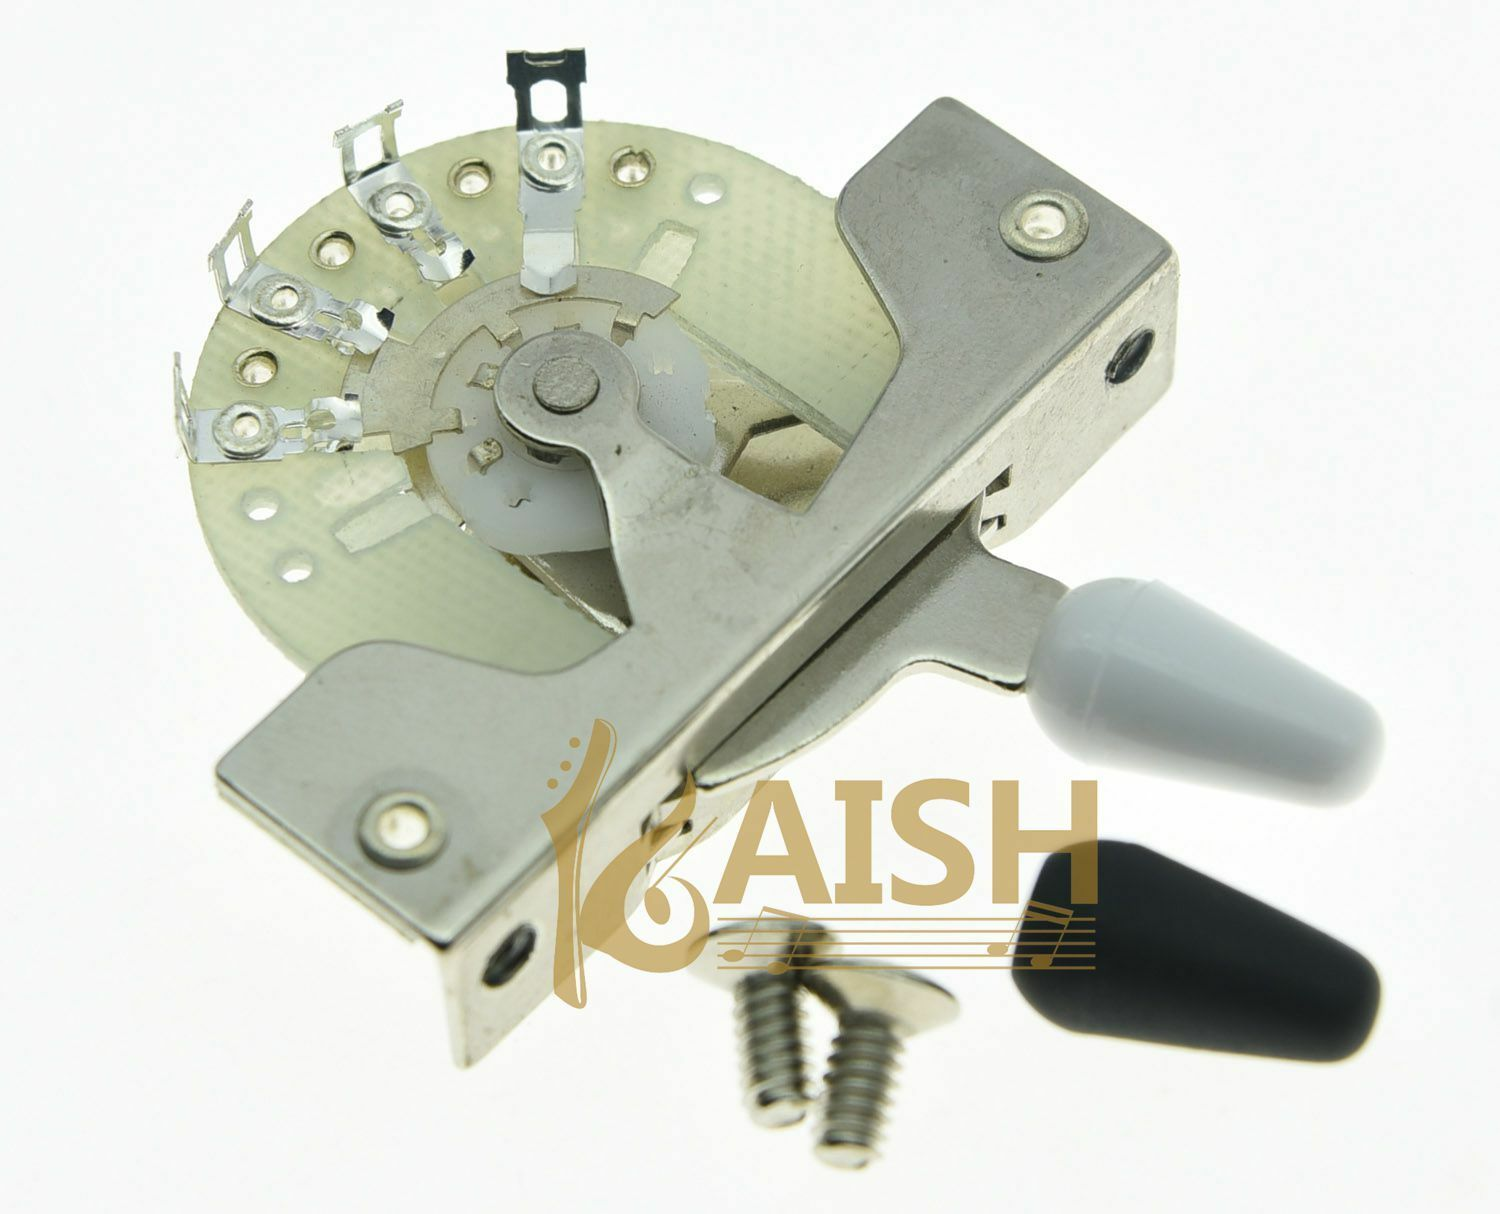 Strat Tele 5 Way Guitar Pickup Selector Switch Crl Style Switches W 1 Of 5only 3 Available